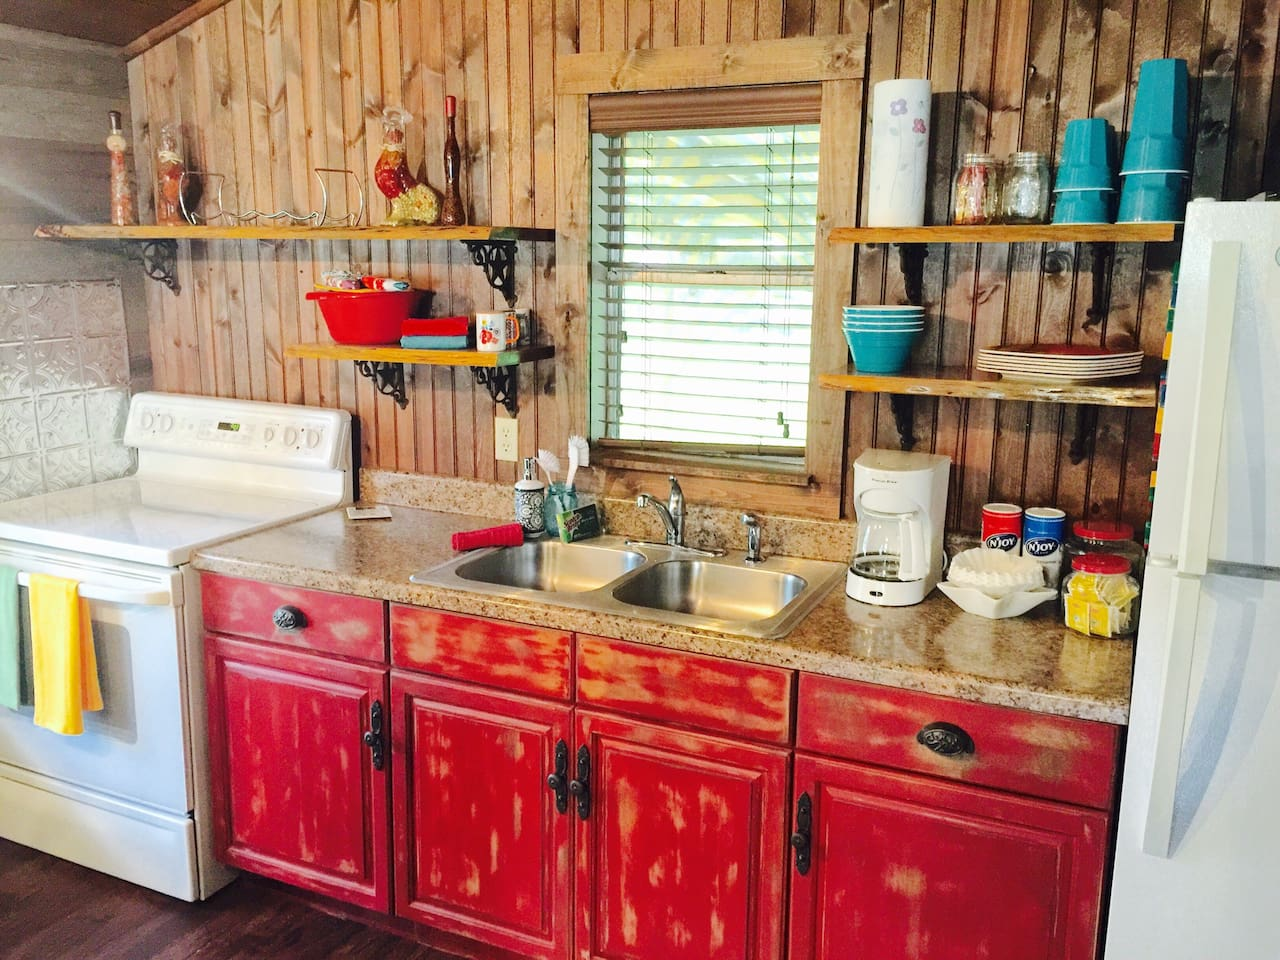 Full Kitchen with everything you need to cook!